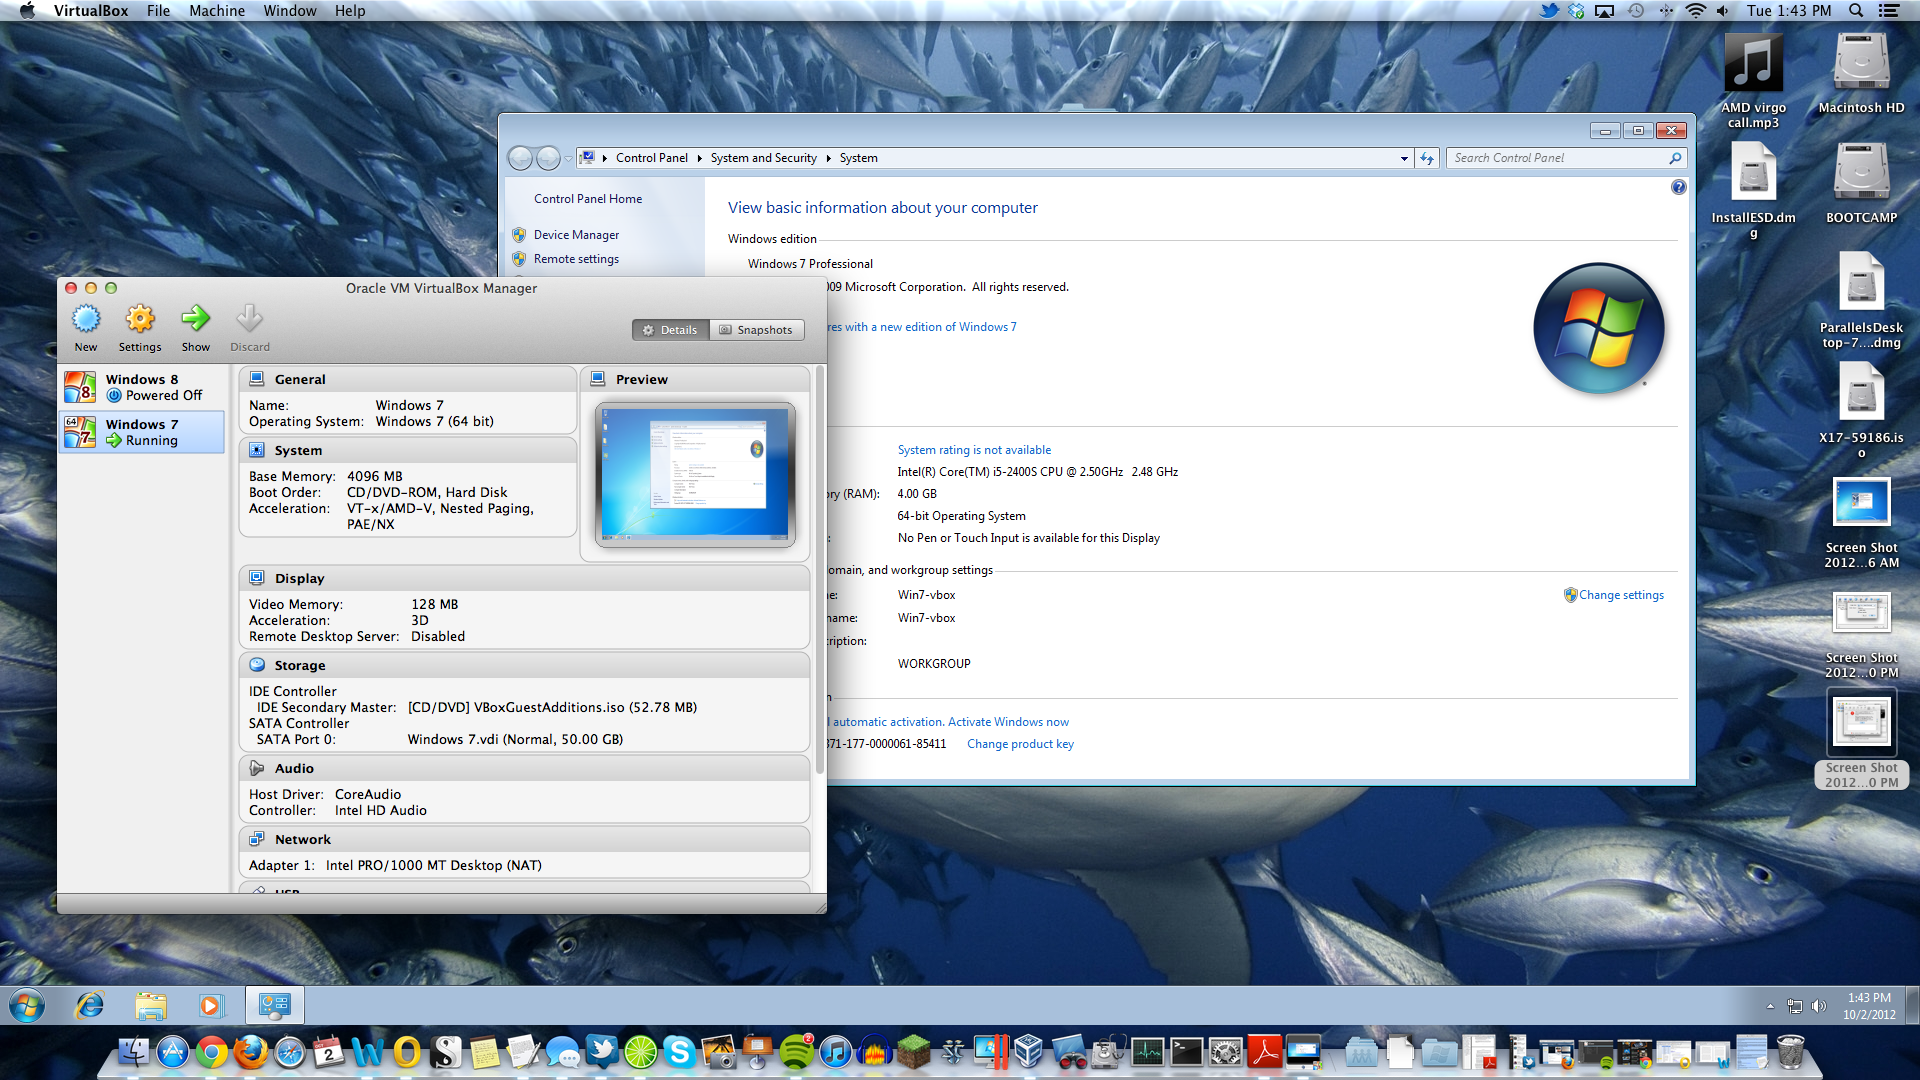 VirtualBox's Seamless mode works pretty well, though the taskbar can sometimes get in the way of your OS X applications.